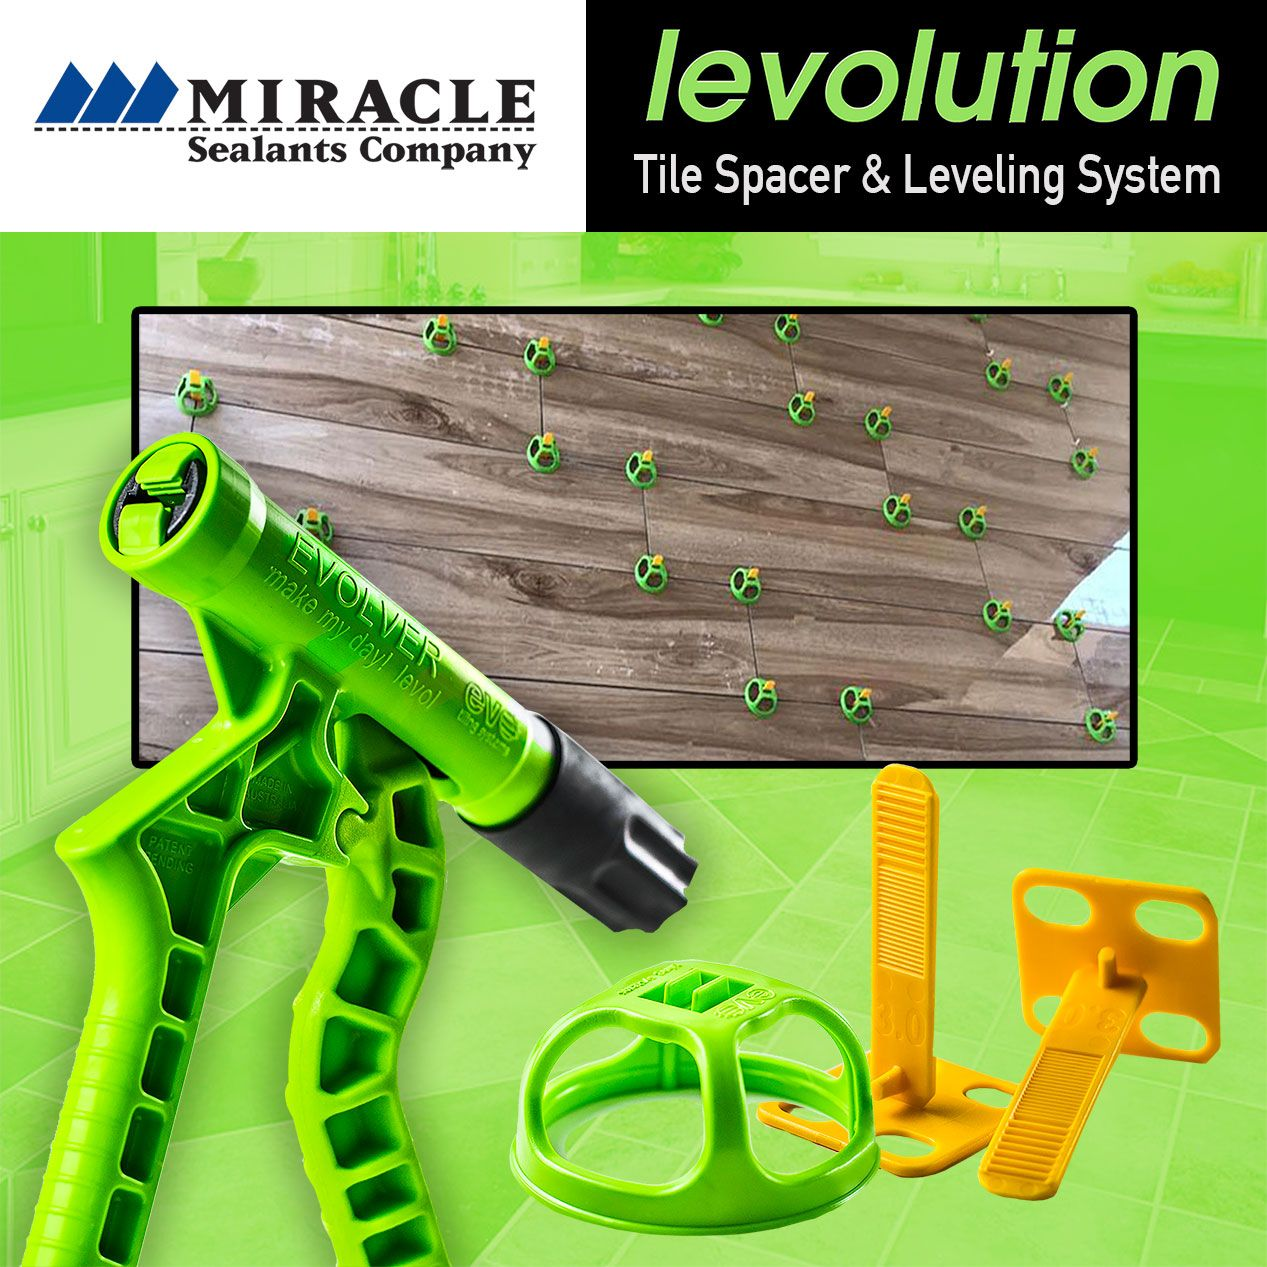 Miracle Sealants Levolution Tile Leveling & Spacer